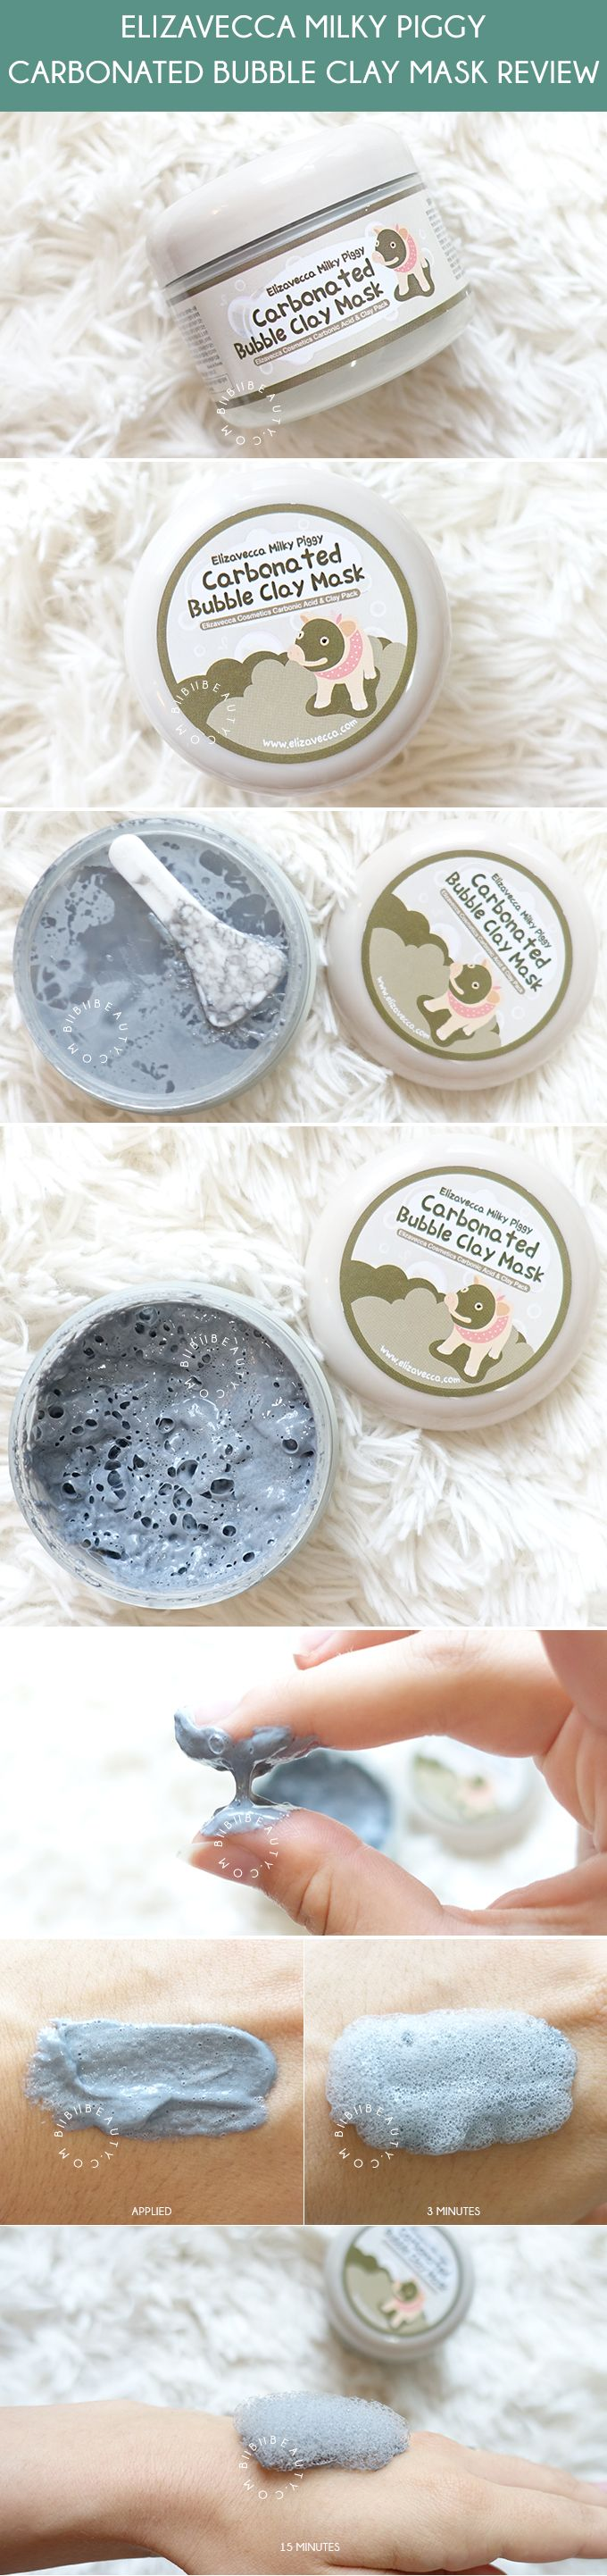 In-depth review on the popular bubble clay mask from Korea! See my first impression video plus find out if it is really worth the bubble clay mask hype! CLICK TO SEE >> http://www.biibiibeauty.com/elizavecca-milky-piggy-carbonated-bubble-clay-mask-review/ #korea #korean #review #skincare #claymask #bubblemask #bubbleclaymask #mask #trends